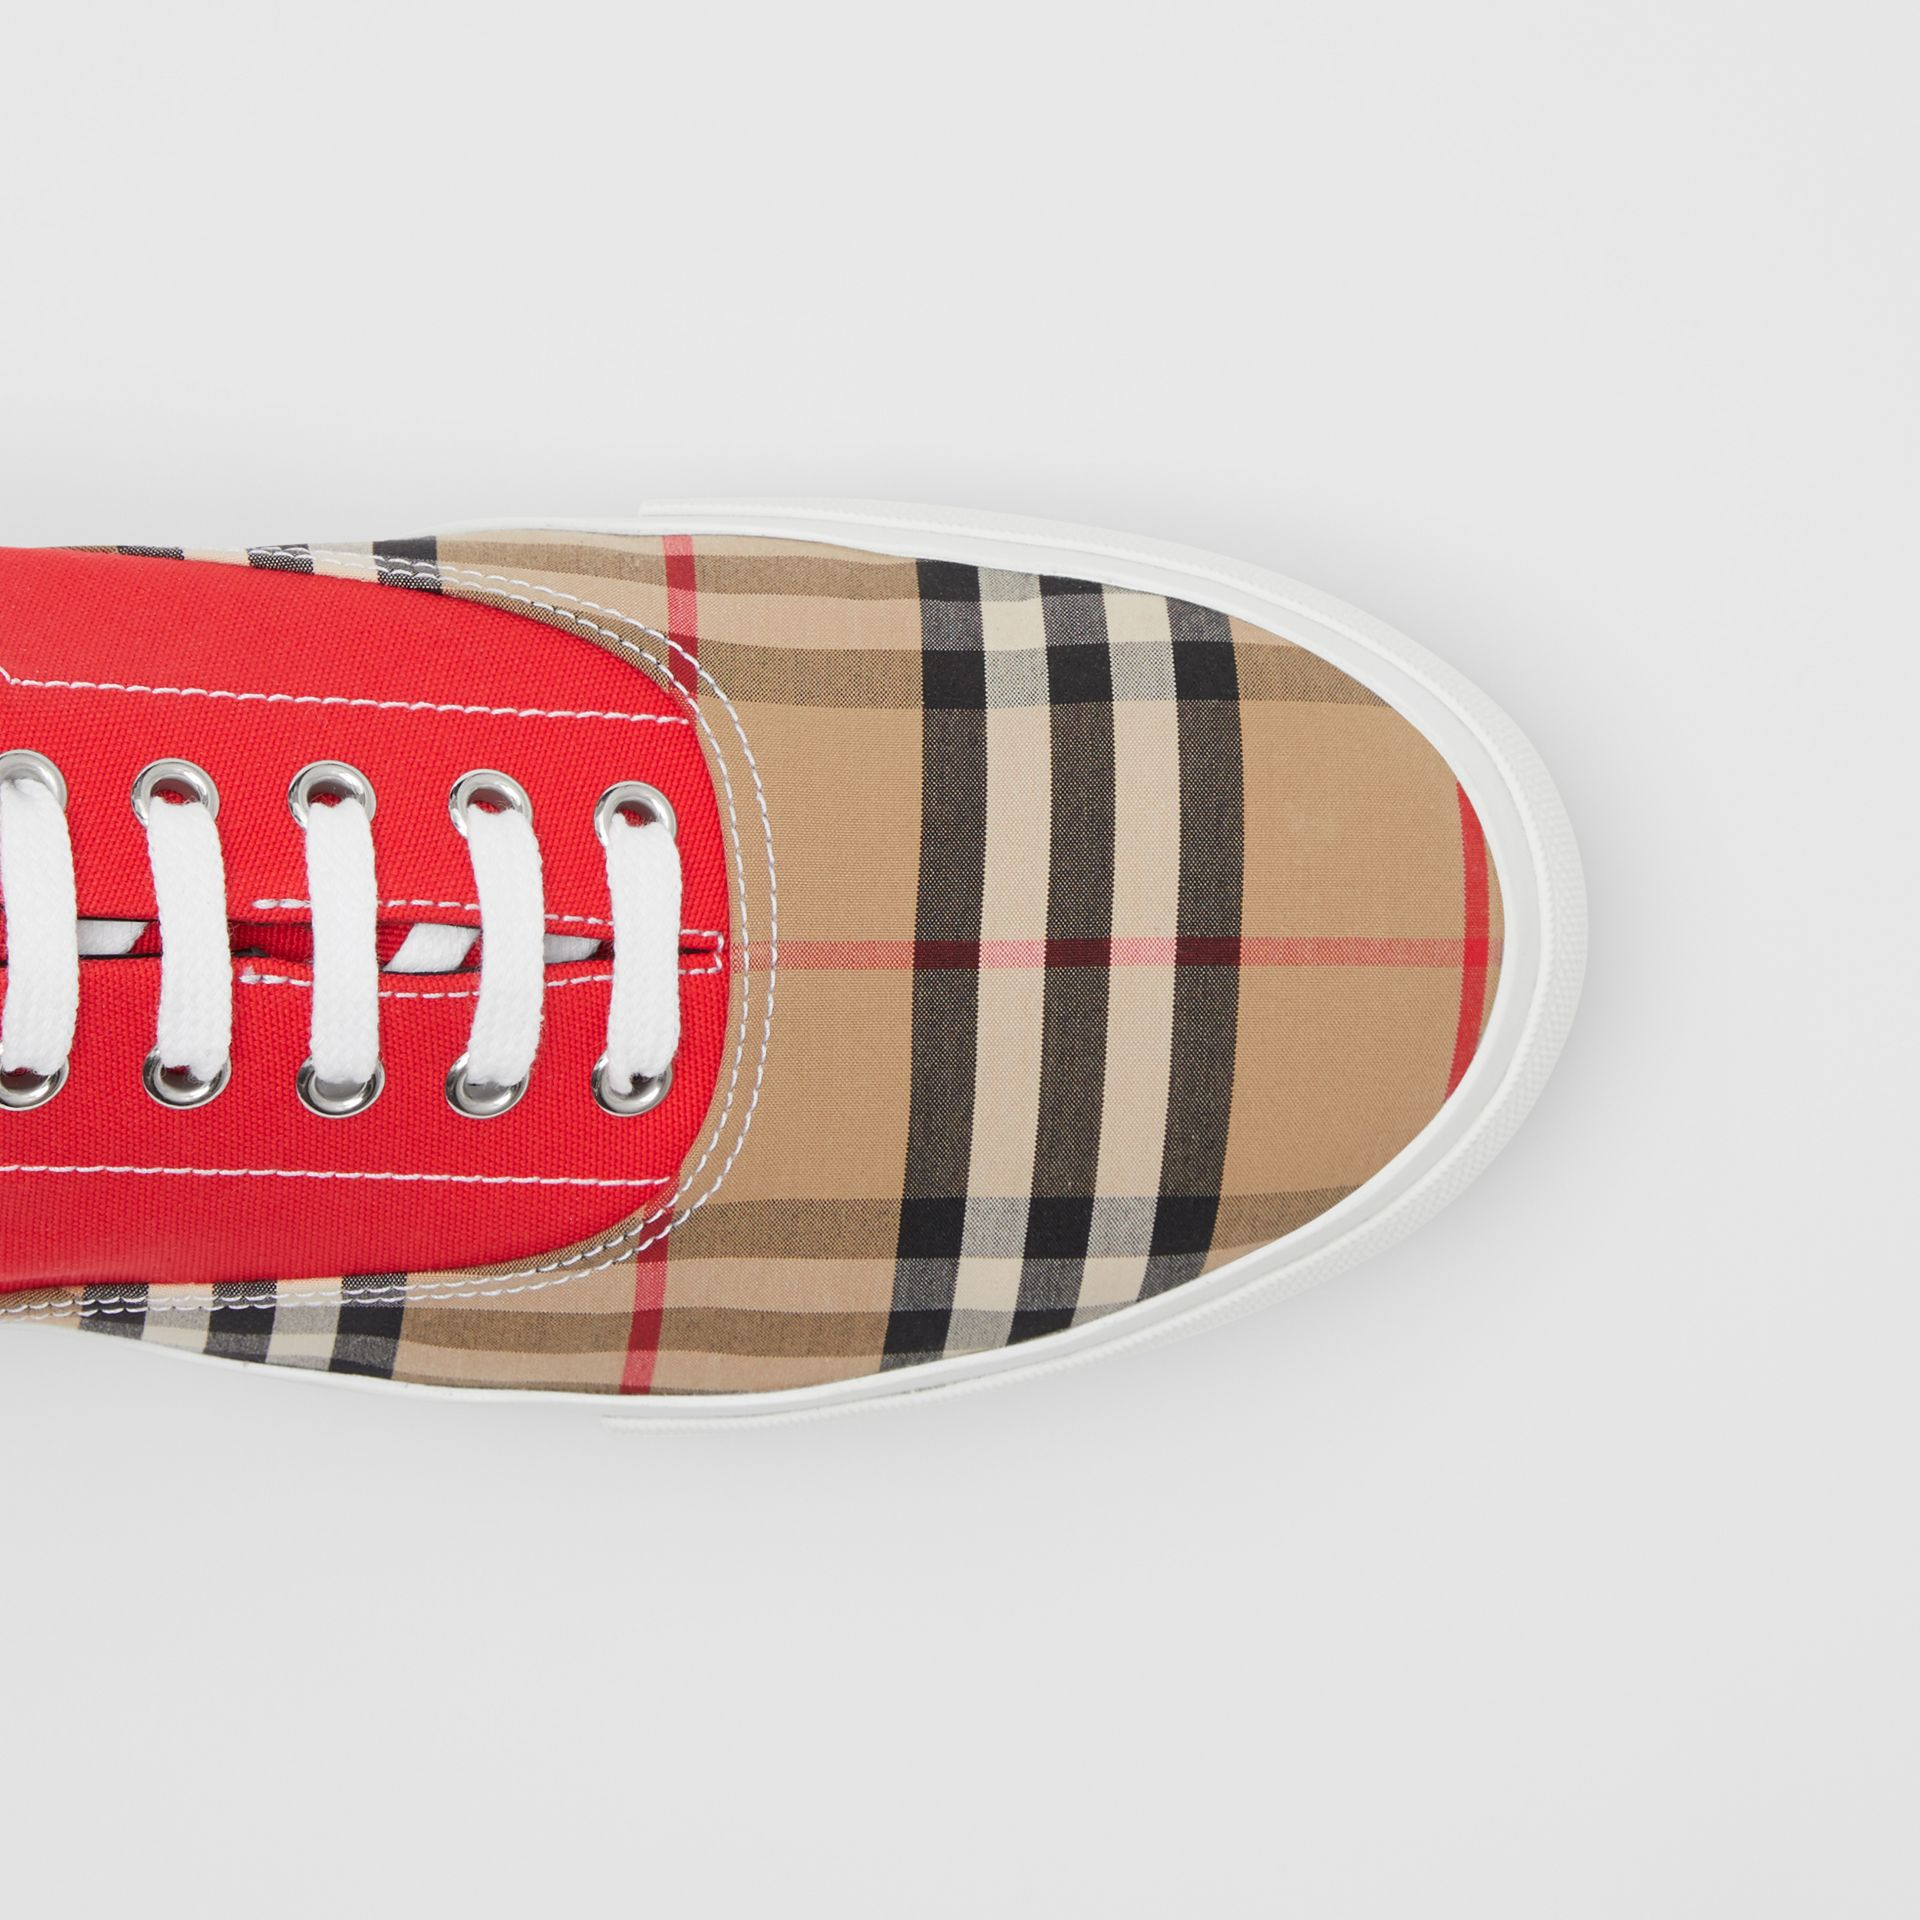 Vintage Check, Cotton Canvas and Suede Sneakers in Archive Beige/red - Men | Burberry - gallery image 1